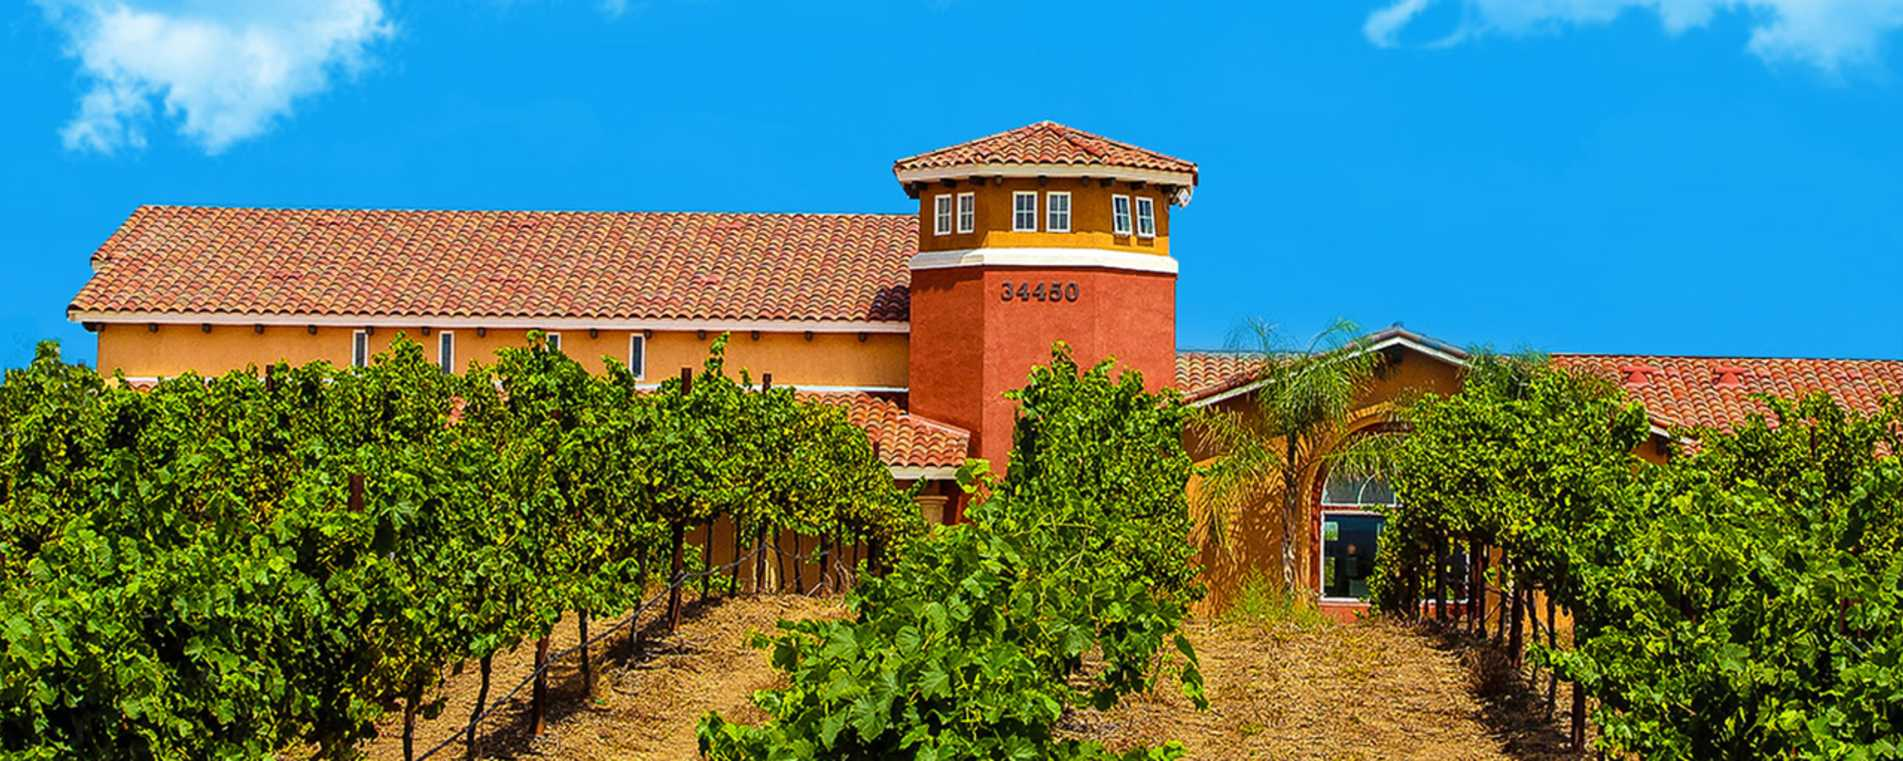 Carter Estate Winery and Resort - Temecula